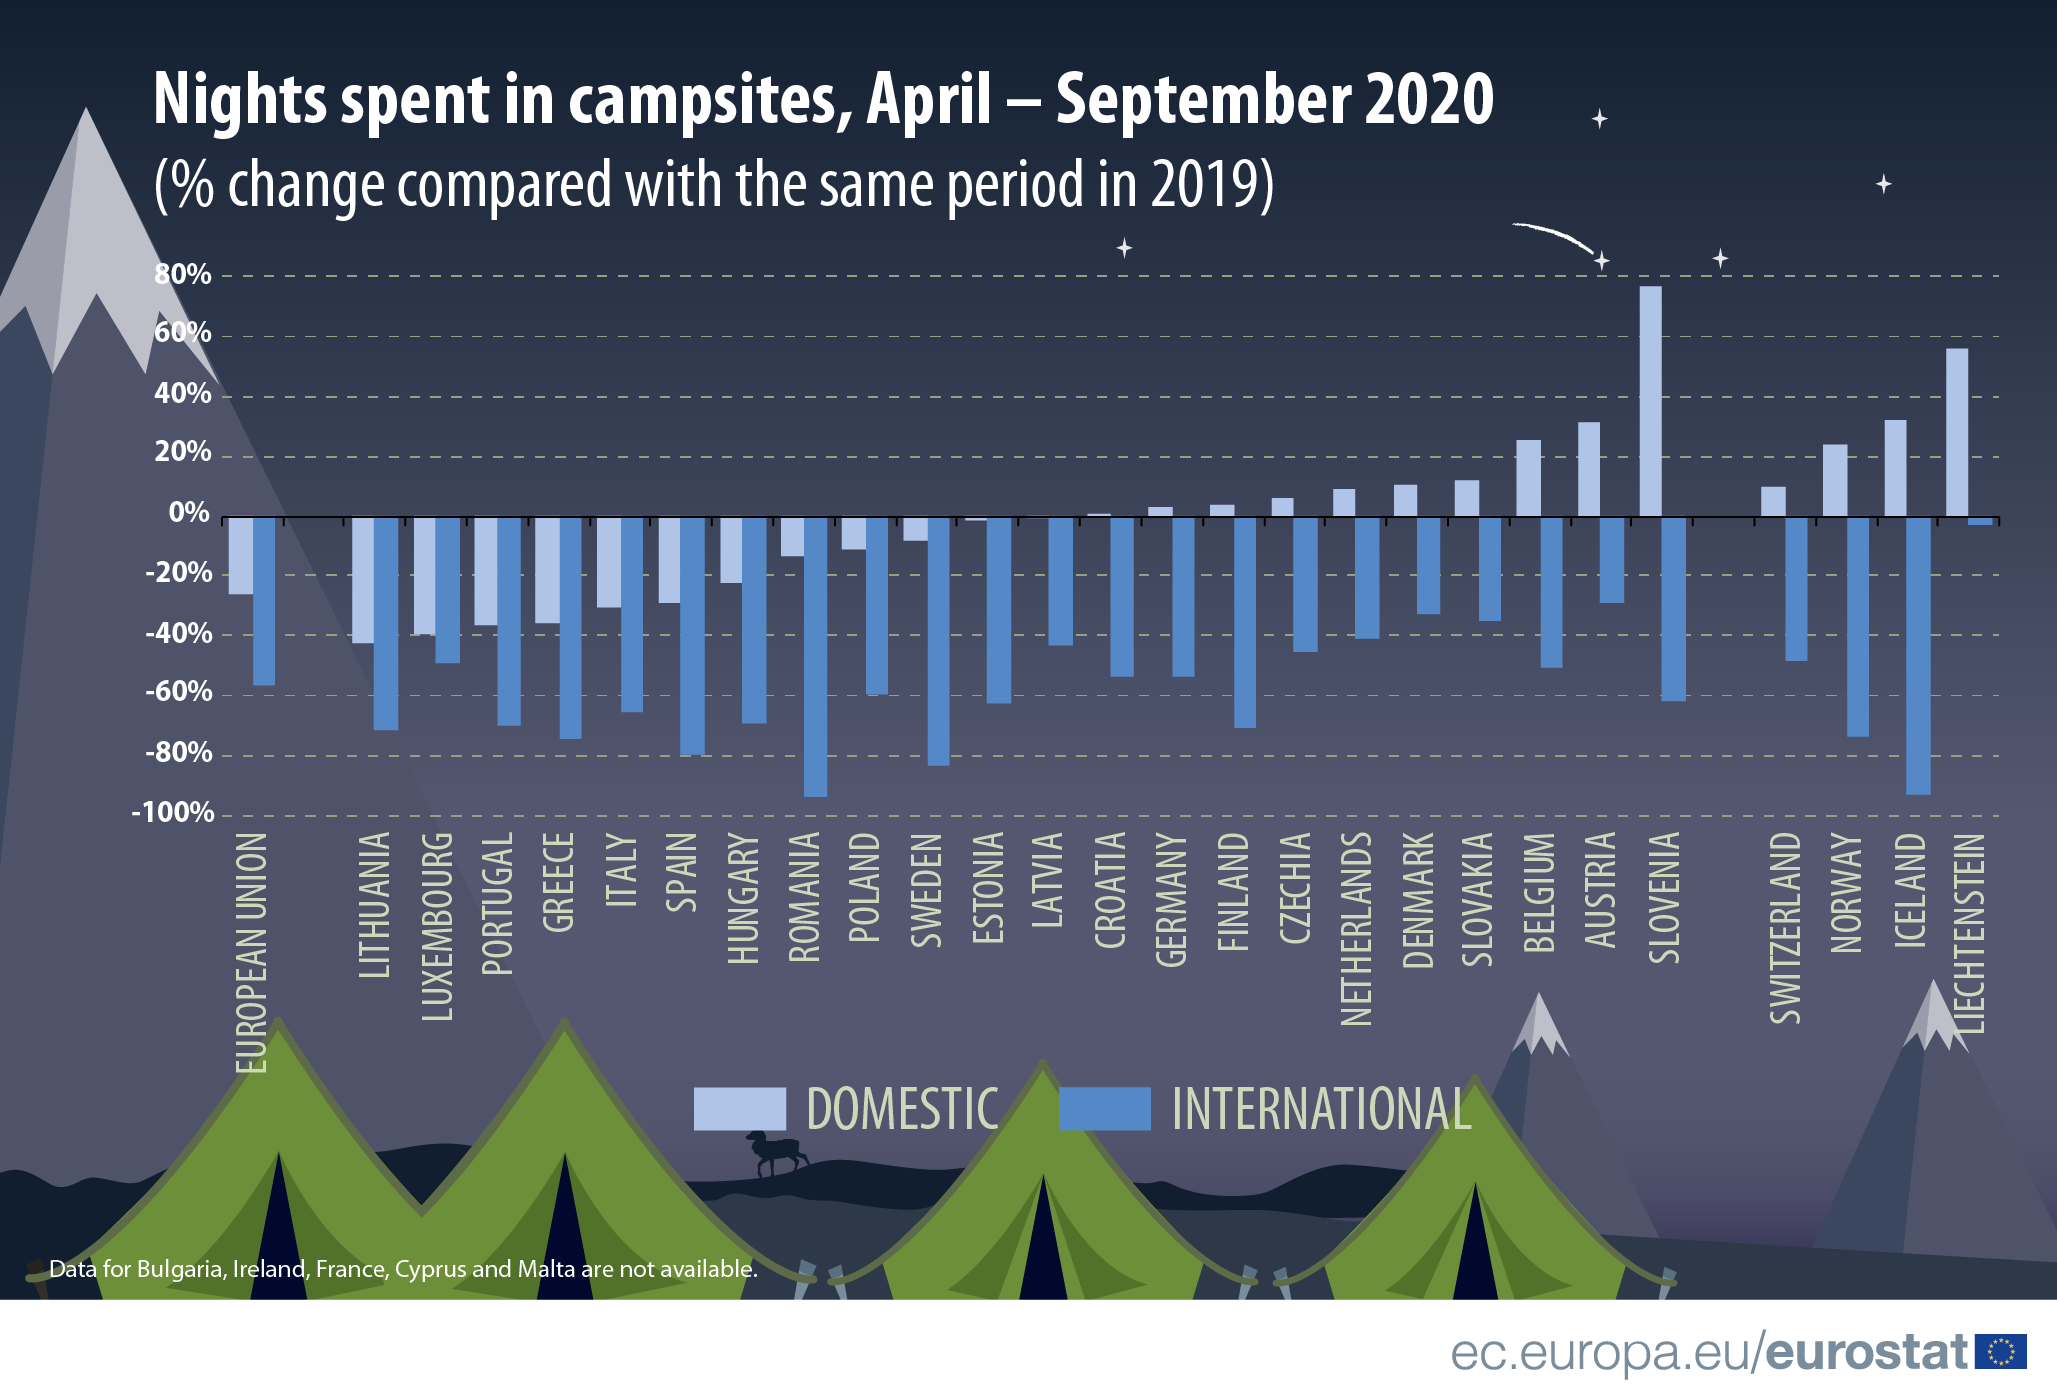 Infographic: Number of nights spent in campsites